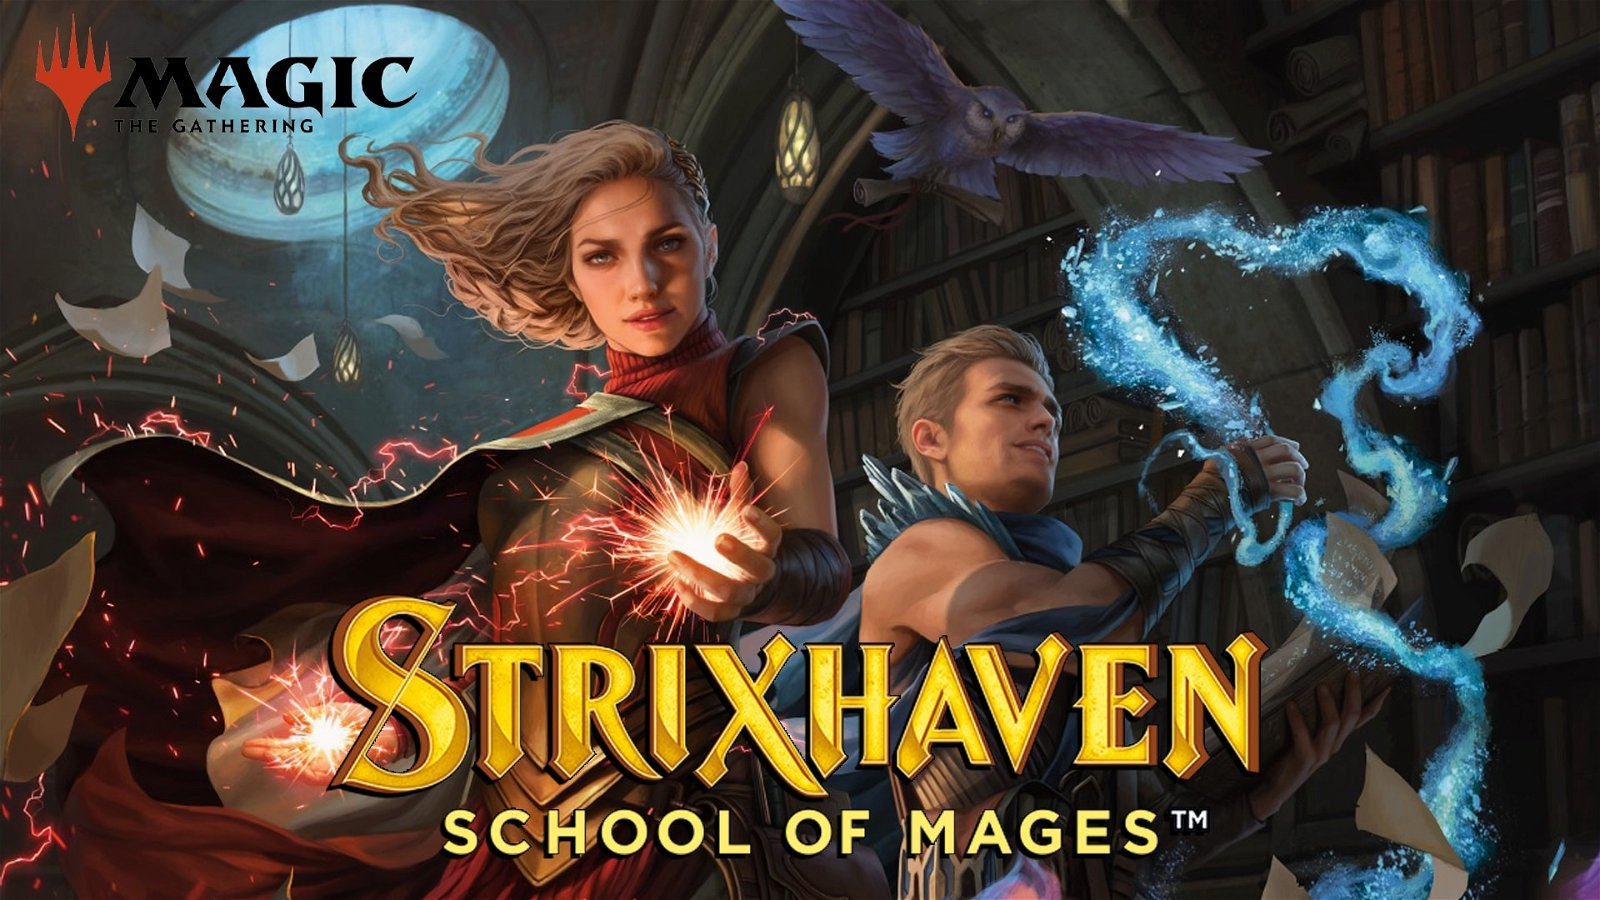 Magic: The Gathering goes back to school in new set Strixhaven